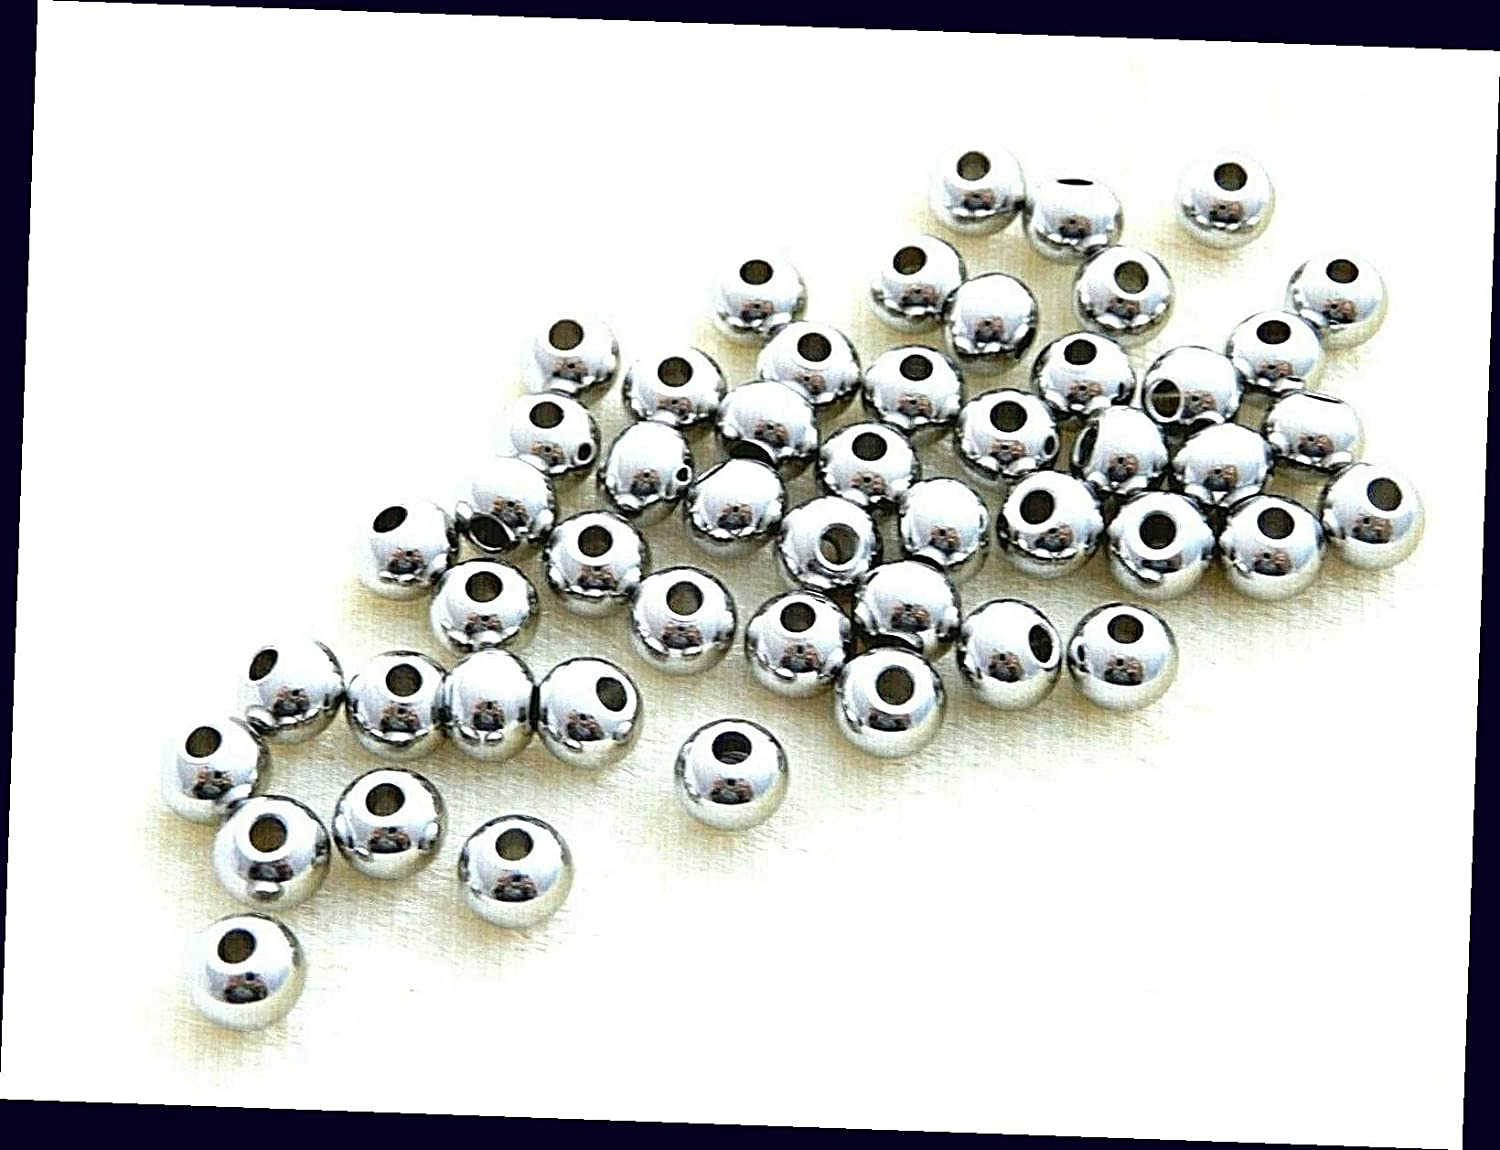 50 Stainless Steel 304 5mm Smooth Seamless Round Silver Spacer Beads for Jewelry Making Bracelets, Necklaces Supplies for DIY Crafts Beadwork